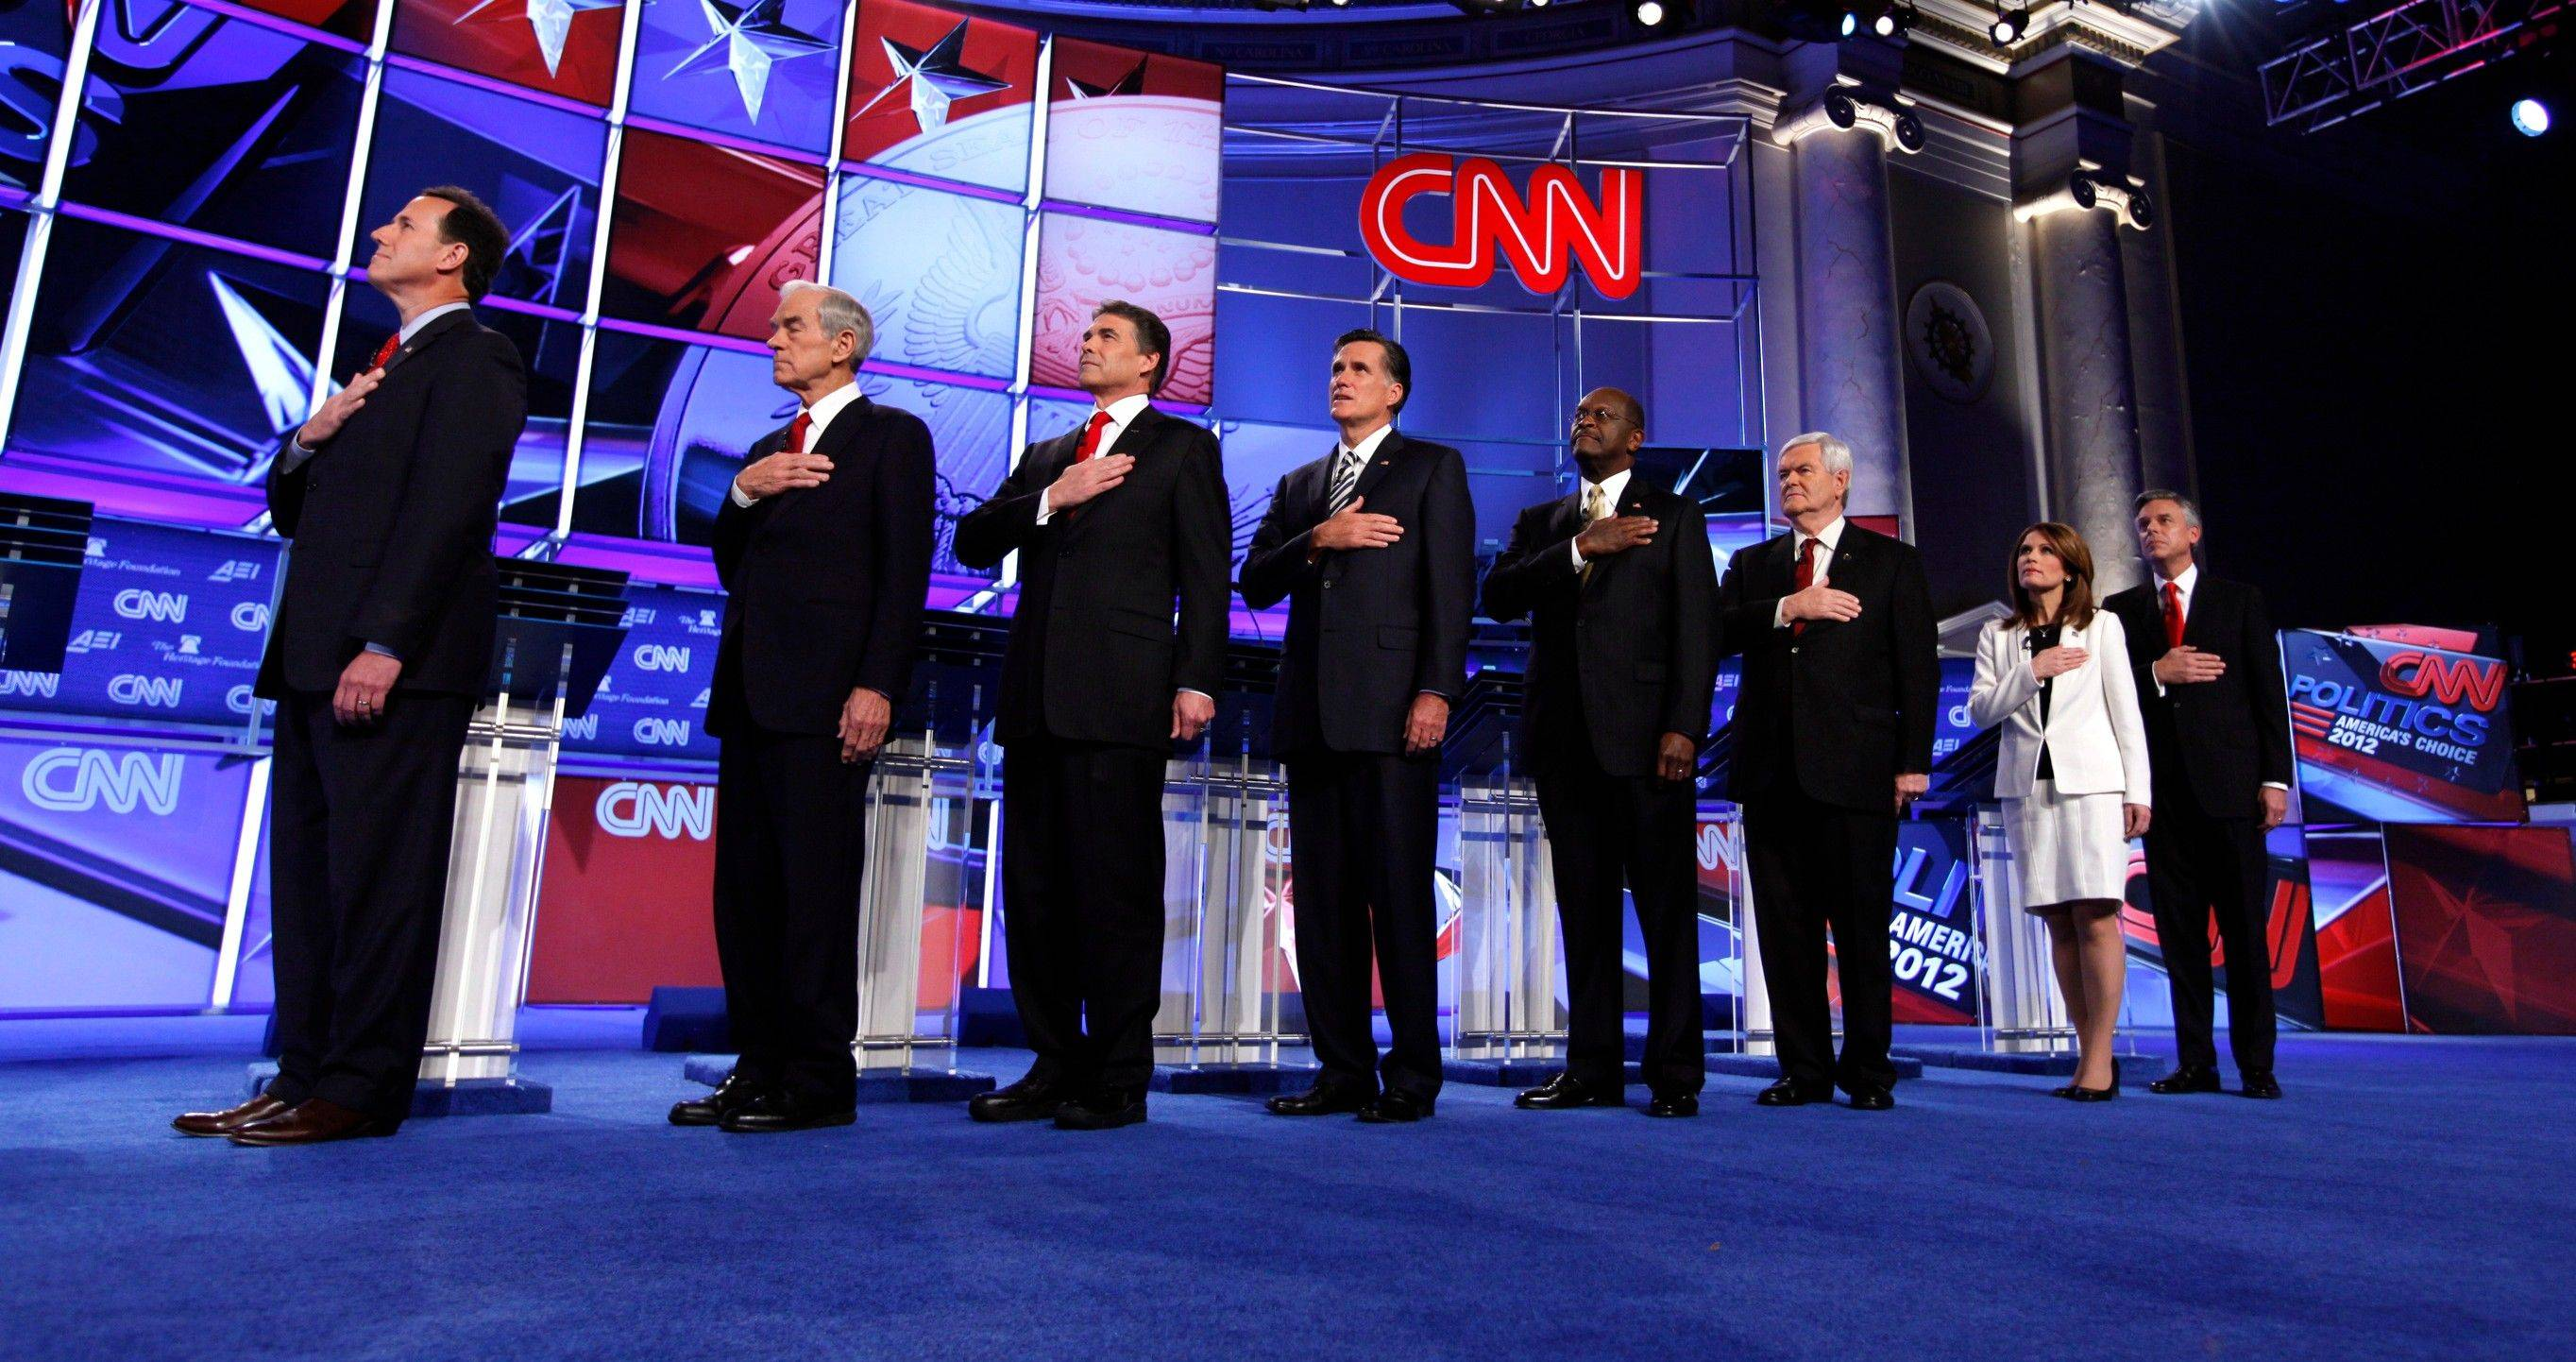 Republican presidential candidates from left, former Pennsylvania Sen. Rick Santorum, Rep. Ron Paul, R-Texas, Texas Gov. Rick Perry, former Massachusetts Gov. Mitt Romney, businessman Herman Cain, former House Speaker Newt Gingrich, Rep. Michele Bachmann, R-Minn., and former Utah Gov. Jon Huntsman stand for the National Anthem before a Republican presidential debate in Washington, Tuesday, Nov. 22, 2011.